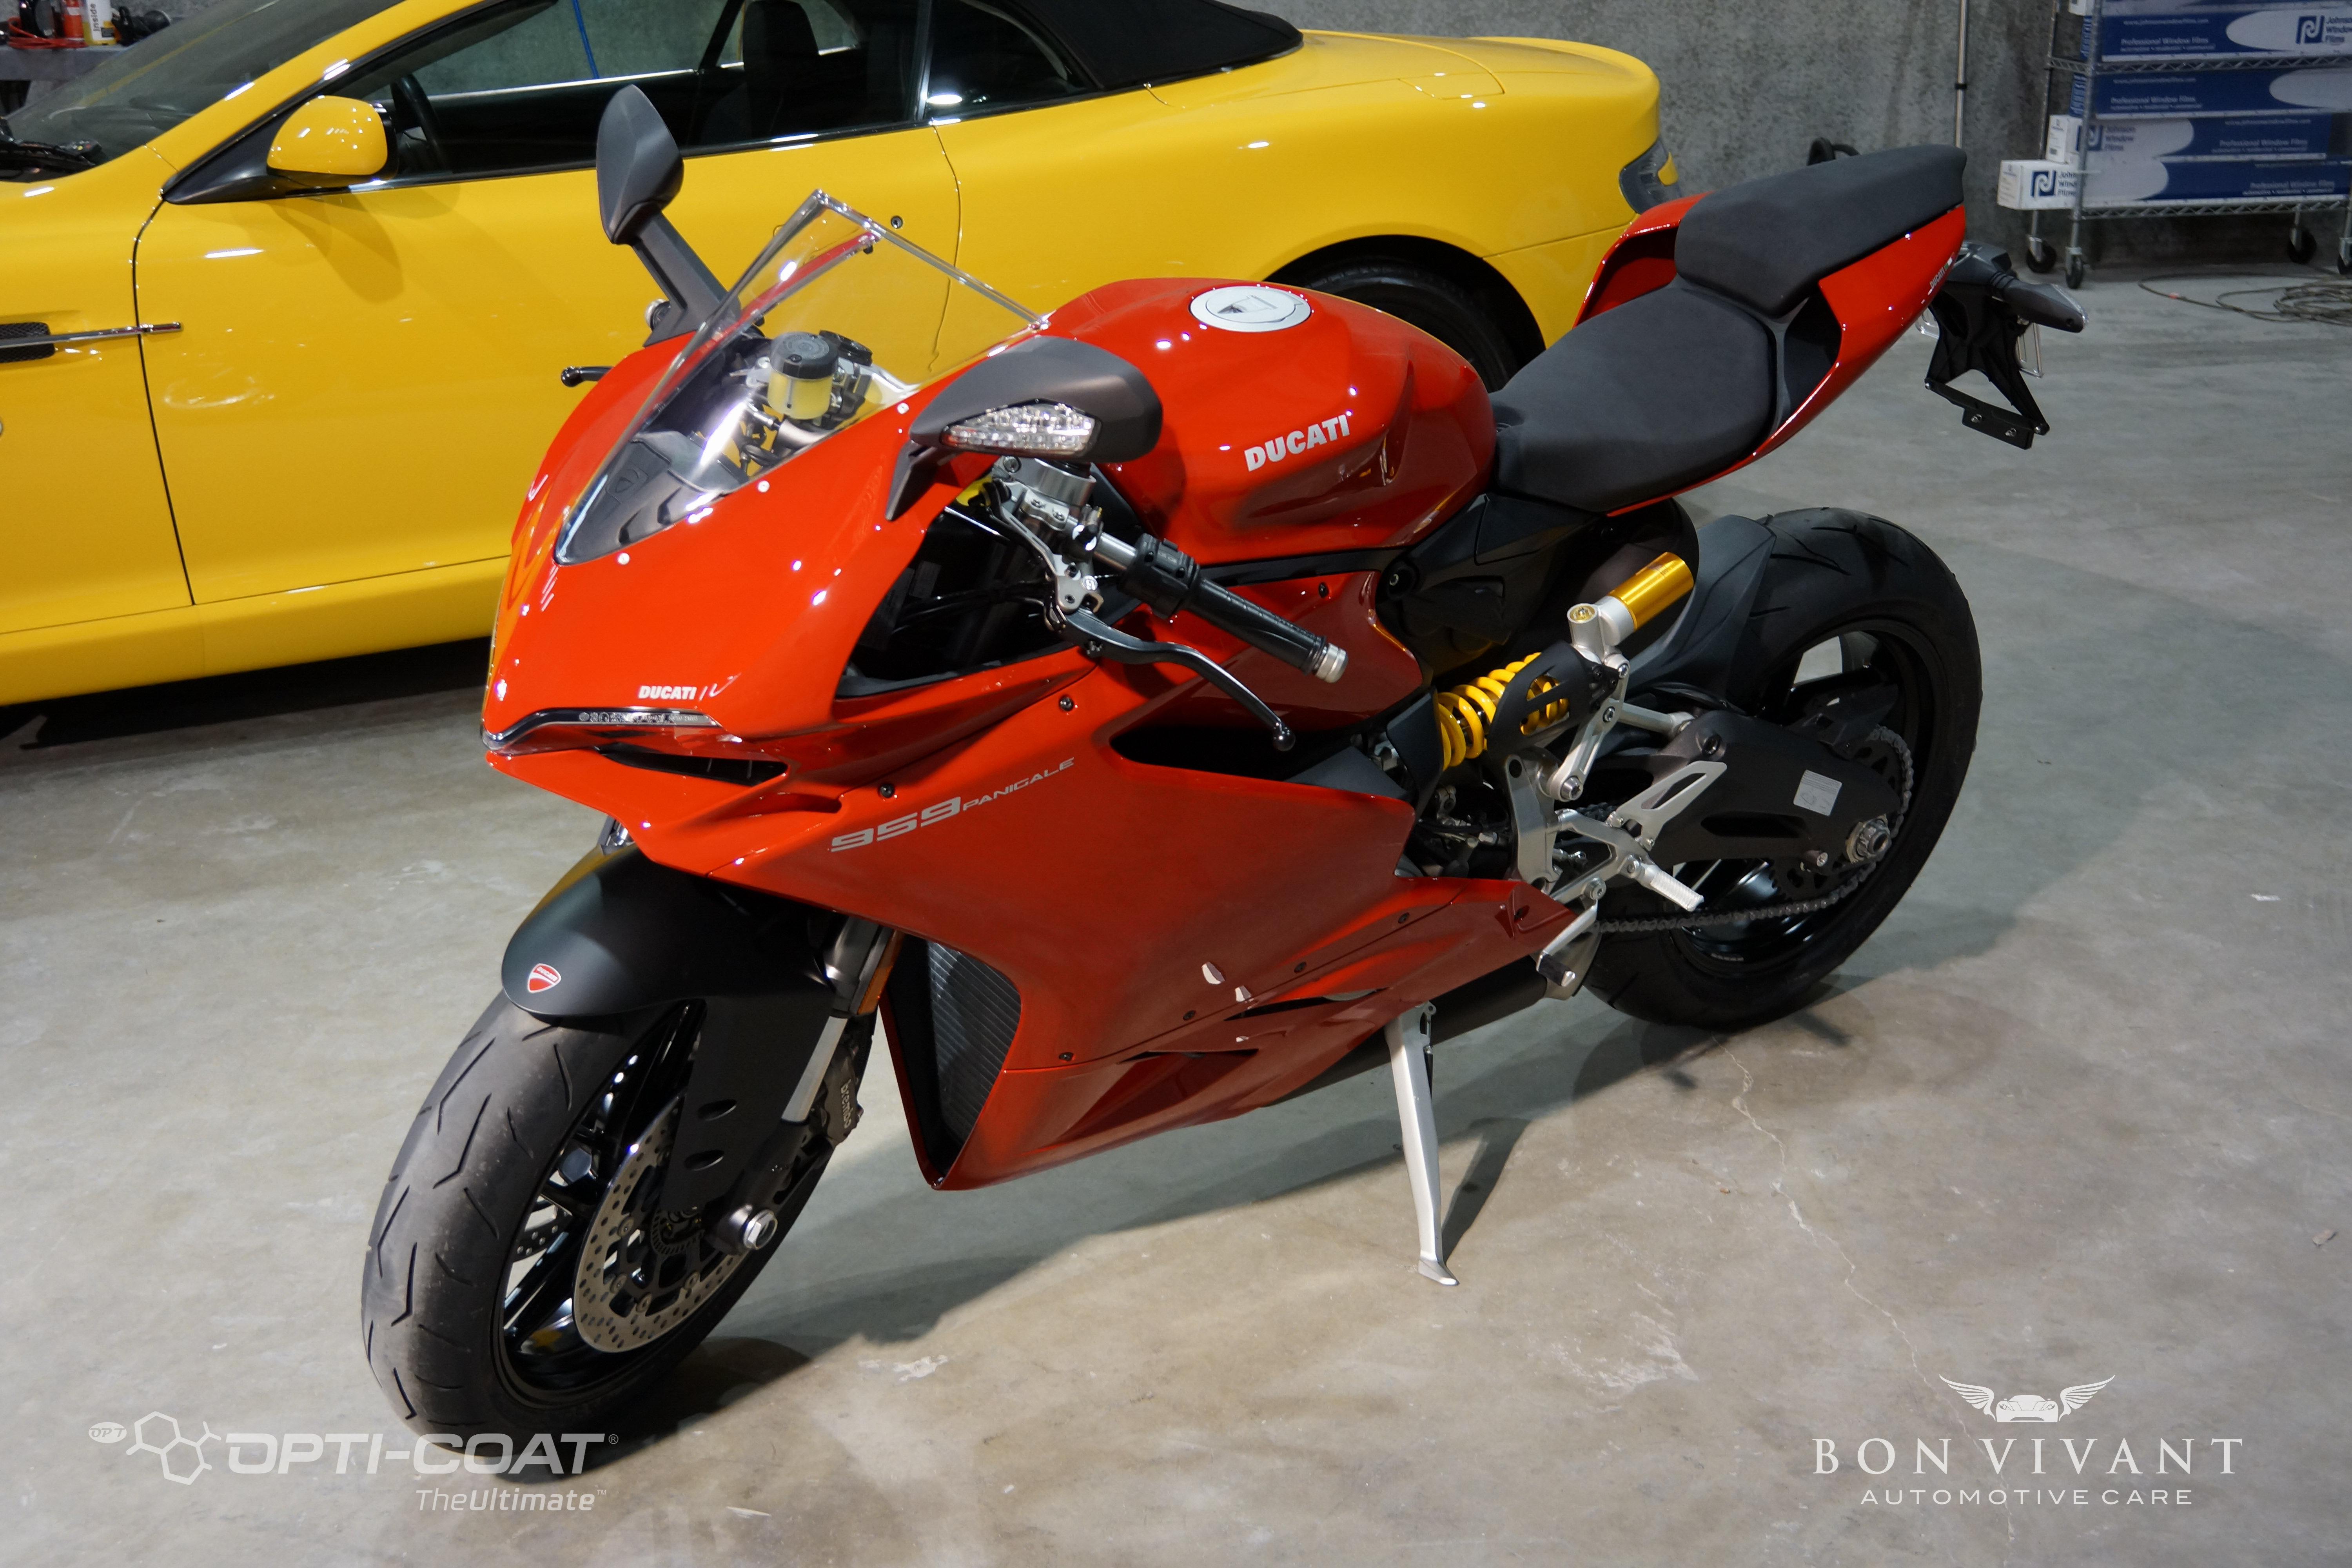 Bon Vivant Paint Protection Coating | Opti-Coat Motorcycle Protection | Ducati 959